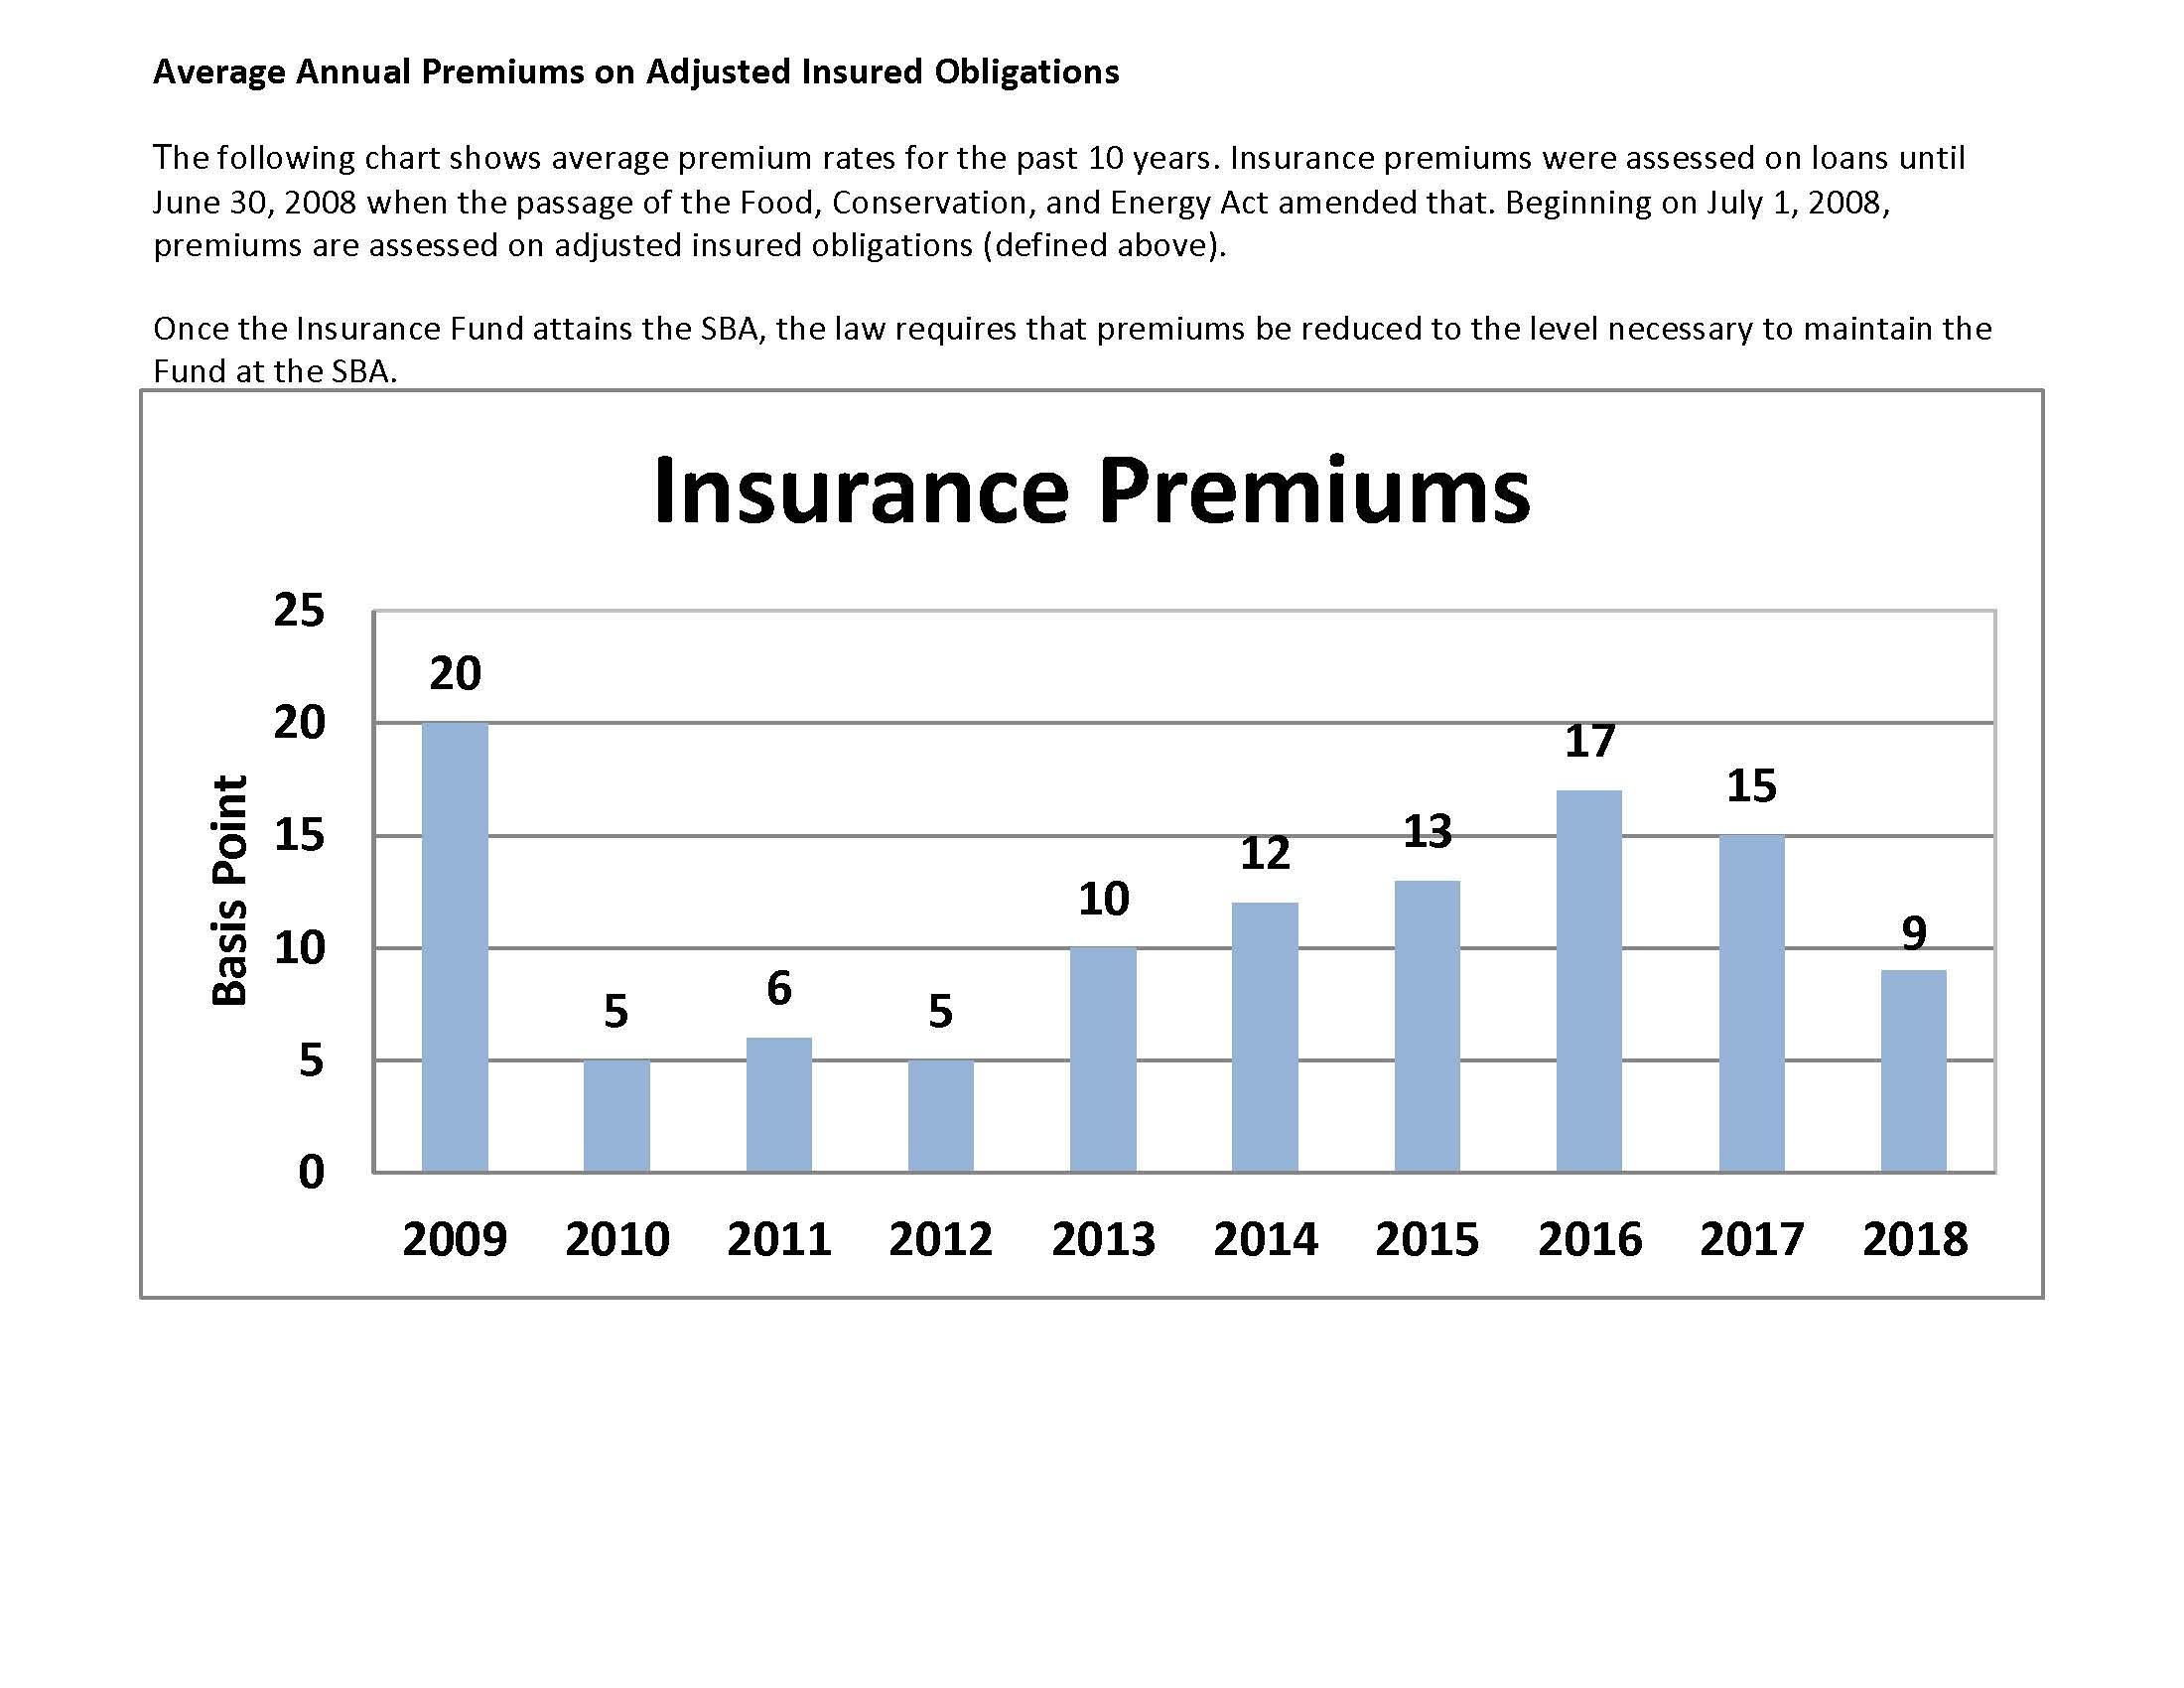 Average Annual Premiums on Adjusted Insured Obligations from 2009-2018